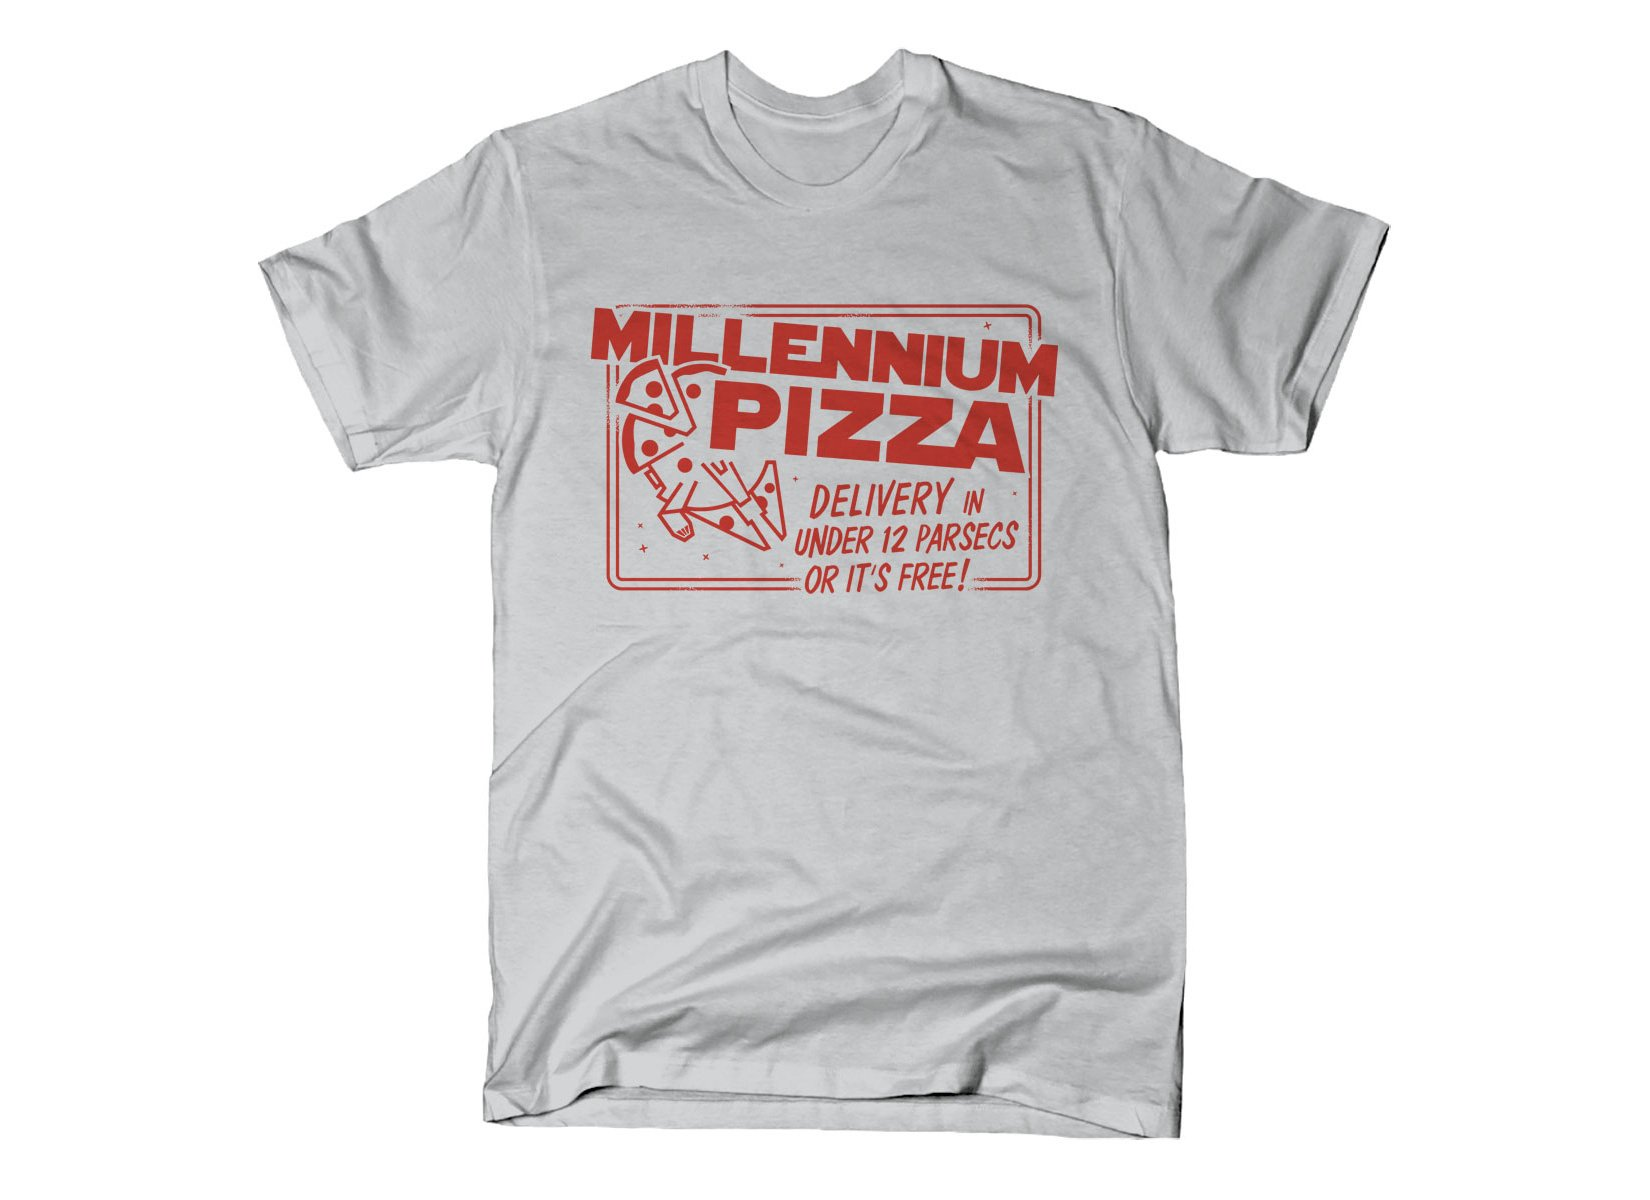 Millennium Pizza on Mens T-Shirt